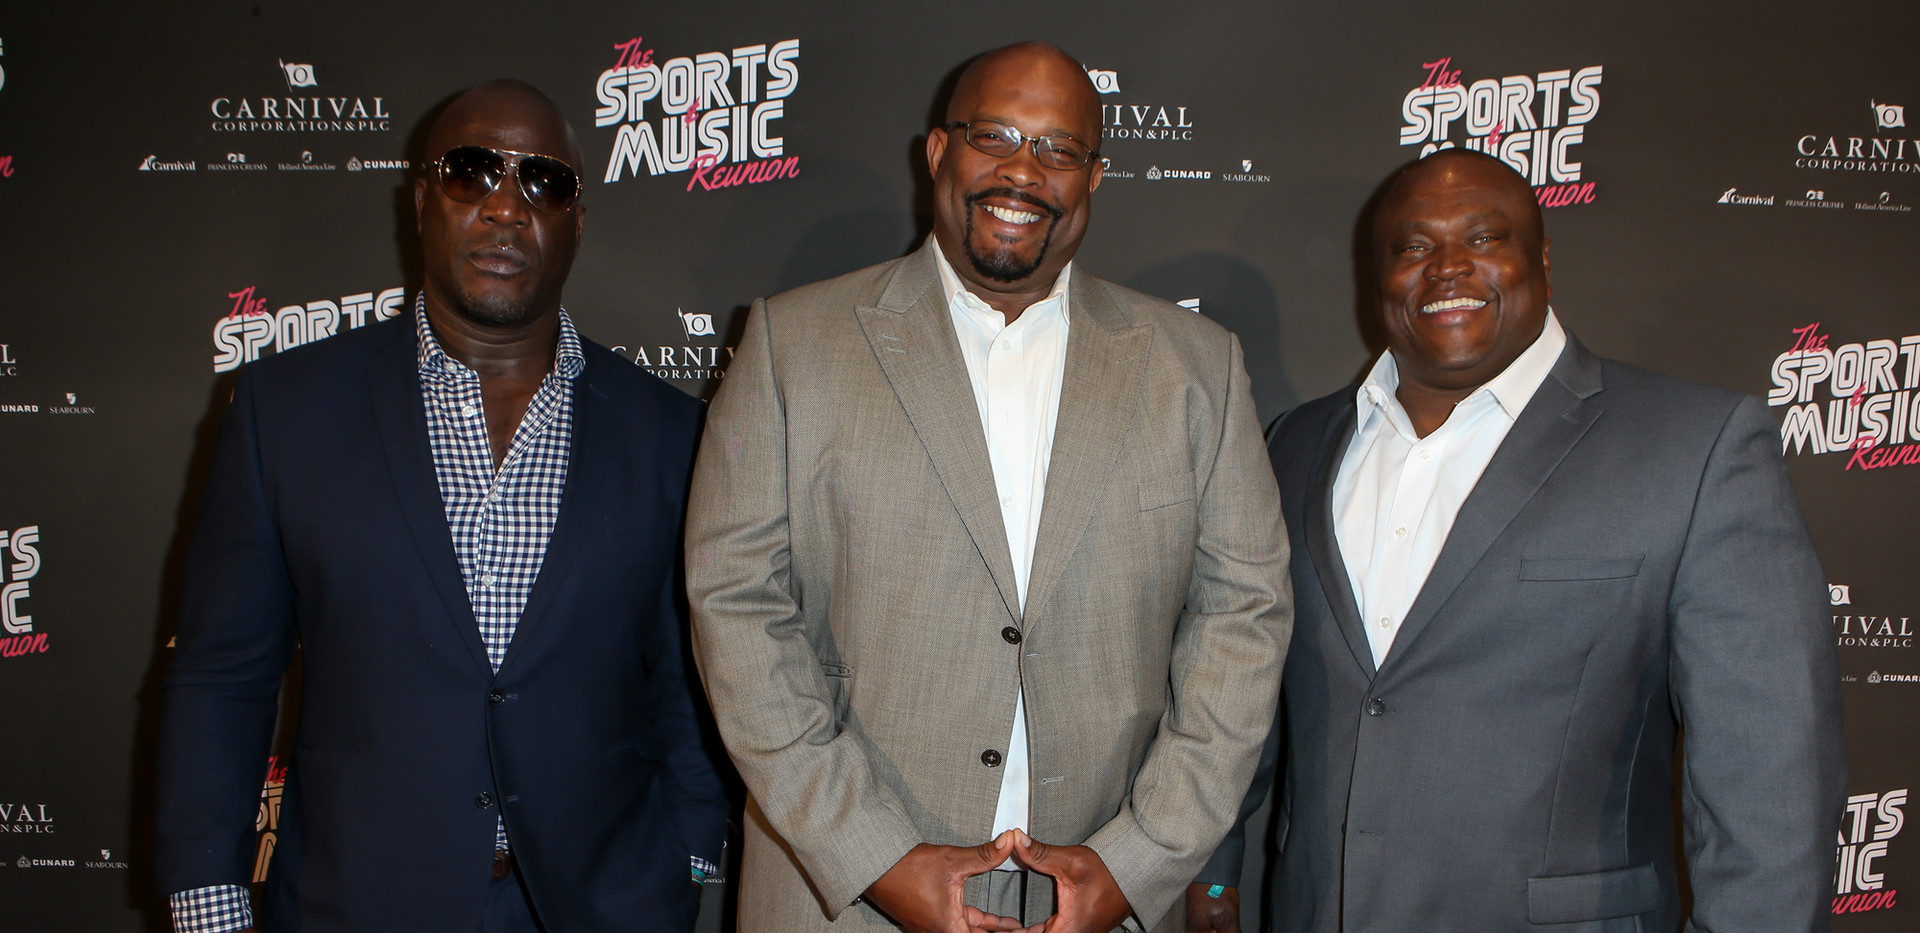 AaronEmmanuel, Tyrone Rodgers, and Leroy Holt - Sports & Music Reuion